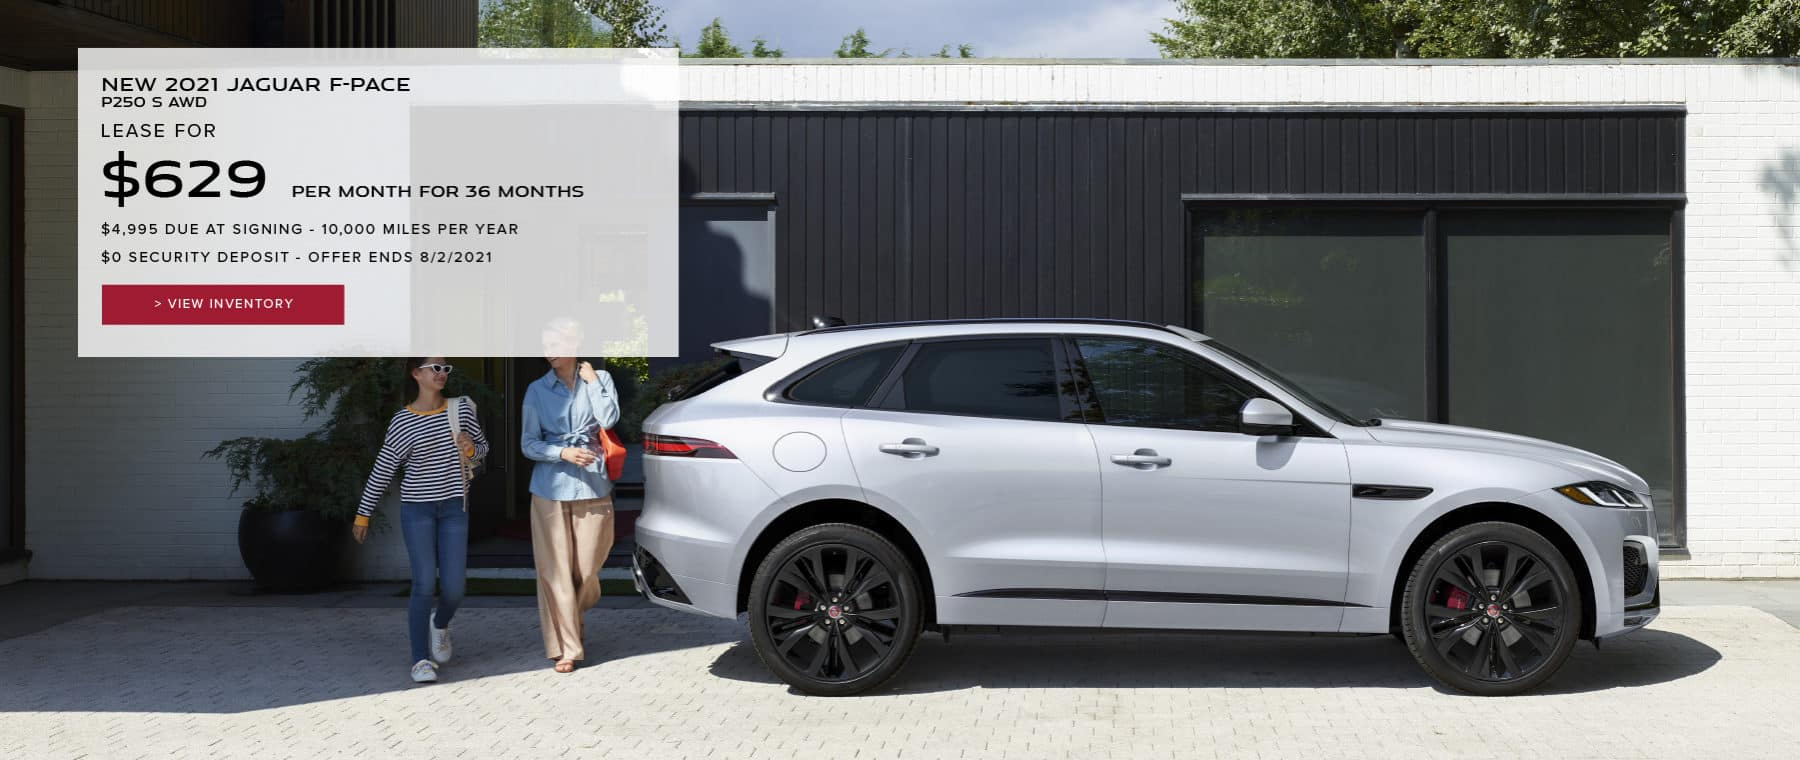 NEW 2021 JAGUAR F-PACE P250 S AWD. $629 PER MONTH. 36 MONTH LEASE TERM. $4,995 CASH DUE AT SIGNING. $0 SECURITY DEPOSIT. 10,000 MILES PER YEAR. EXCLUDES RETAILER FEES, TAXES, TITLE AND REGISTRATION FEES, PROCESSING FEE AND ANY EMISSION TESTING CHARGE. OFFER ENDS 8/2/2021. VIEW INVENTORY. SILVER JAGUAR F-PACE PARKED IN DRIVEWAY.